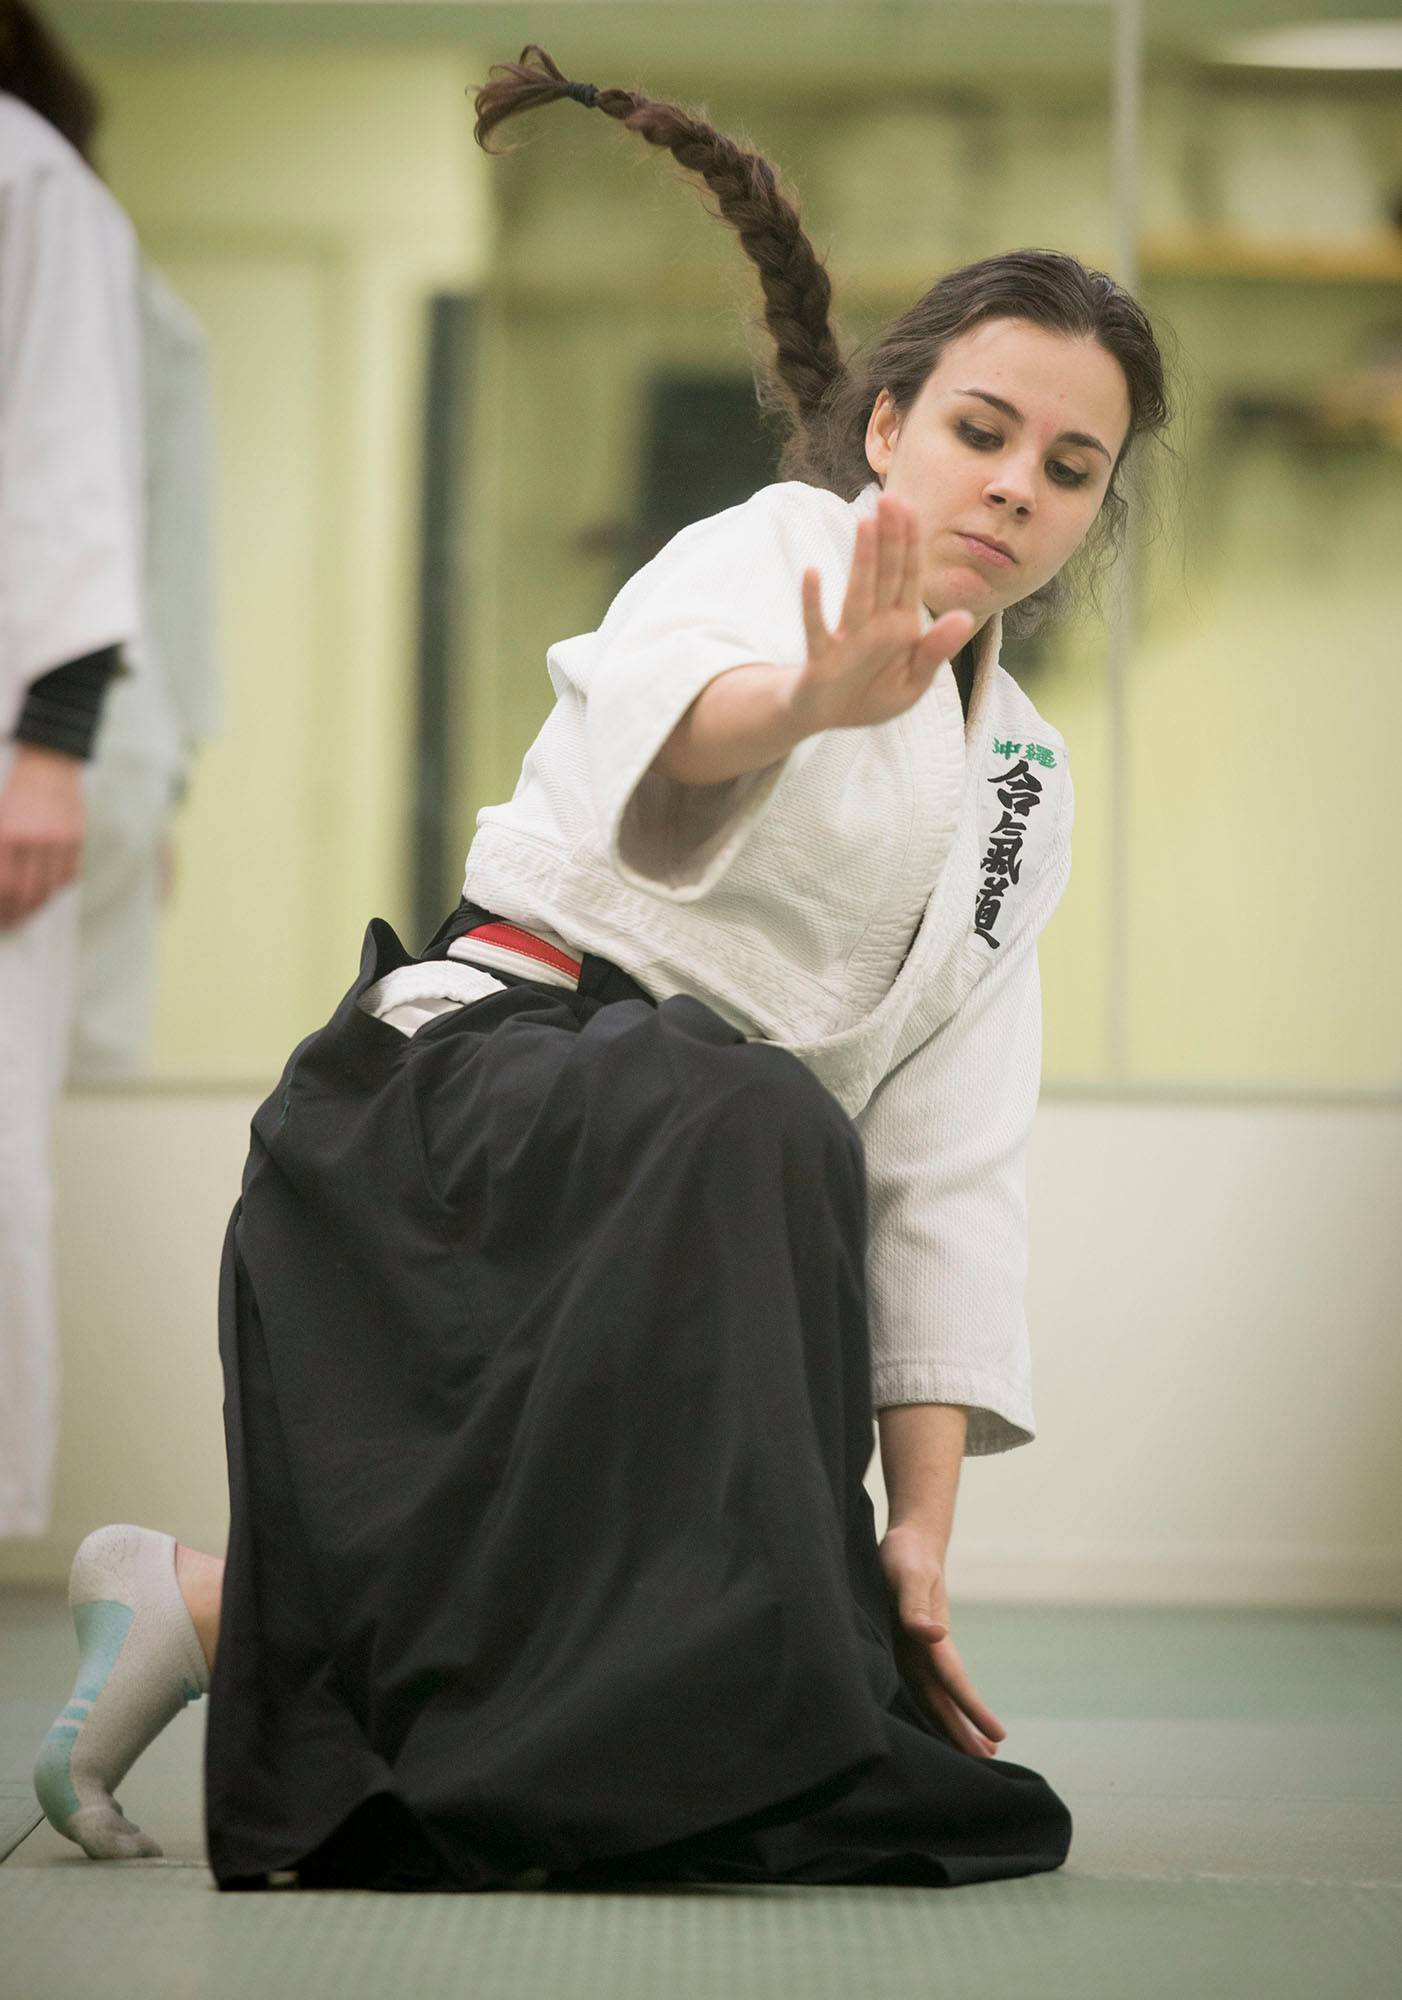 Ana Petricel, 17, practices at D.C. Aikido, where students of all ages and levels of experience and physical fitness take part.